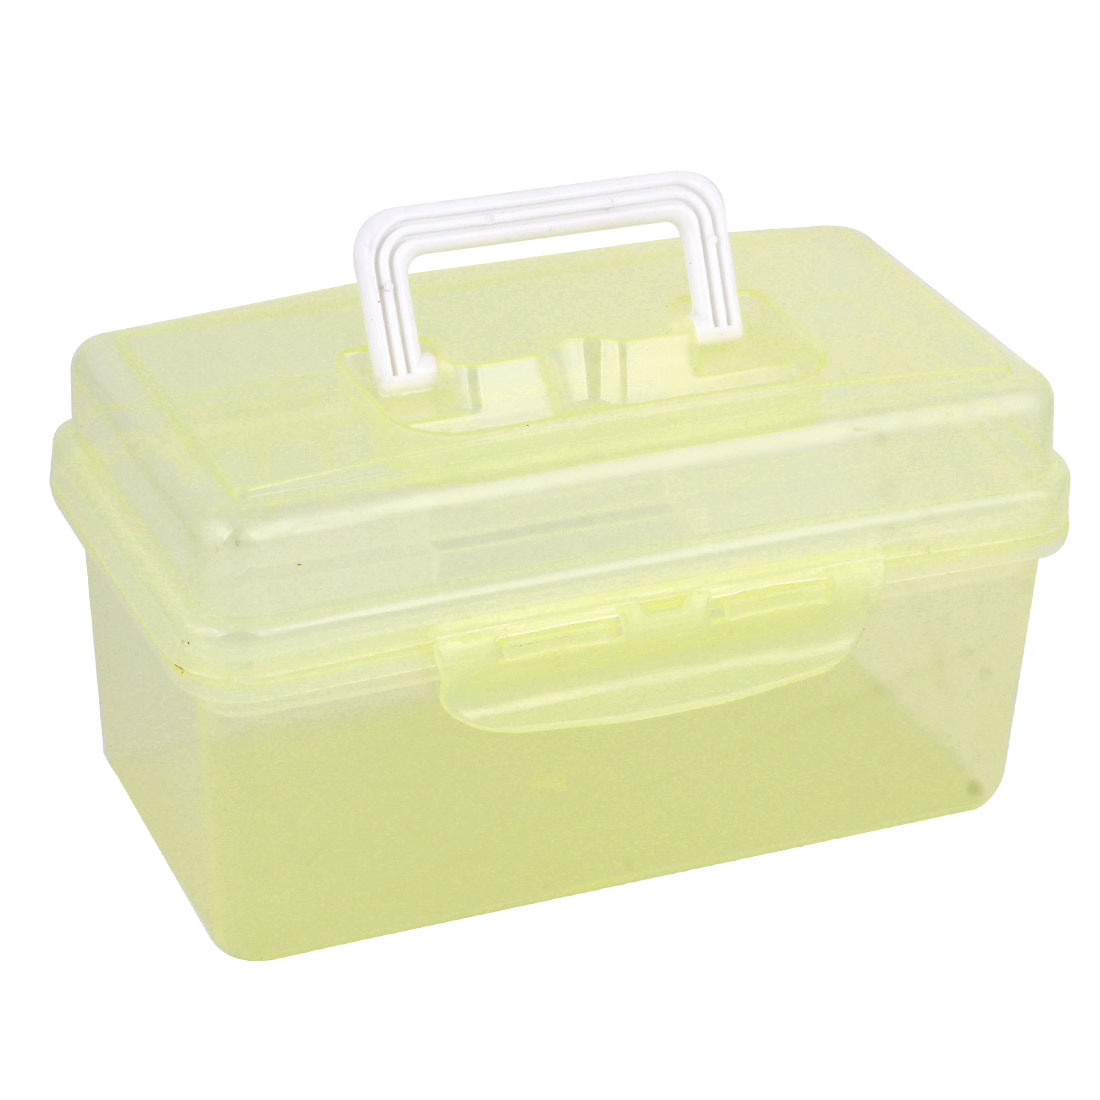 Clear Yellow Plastic Rectangle Shape Hardware Tool Storage Box Holder Case